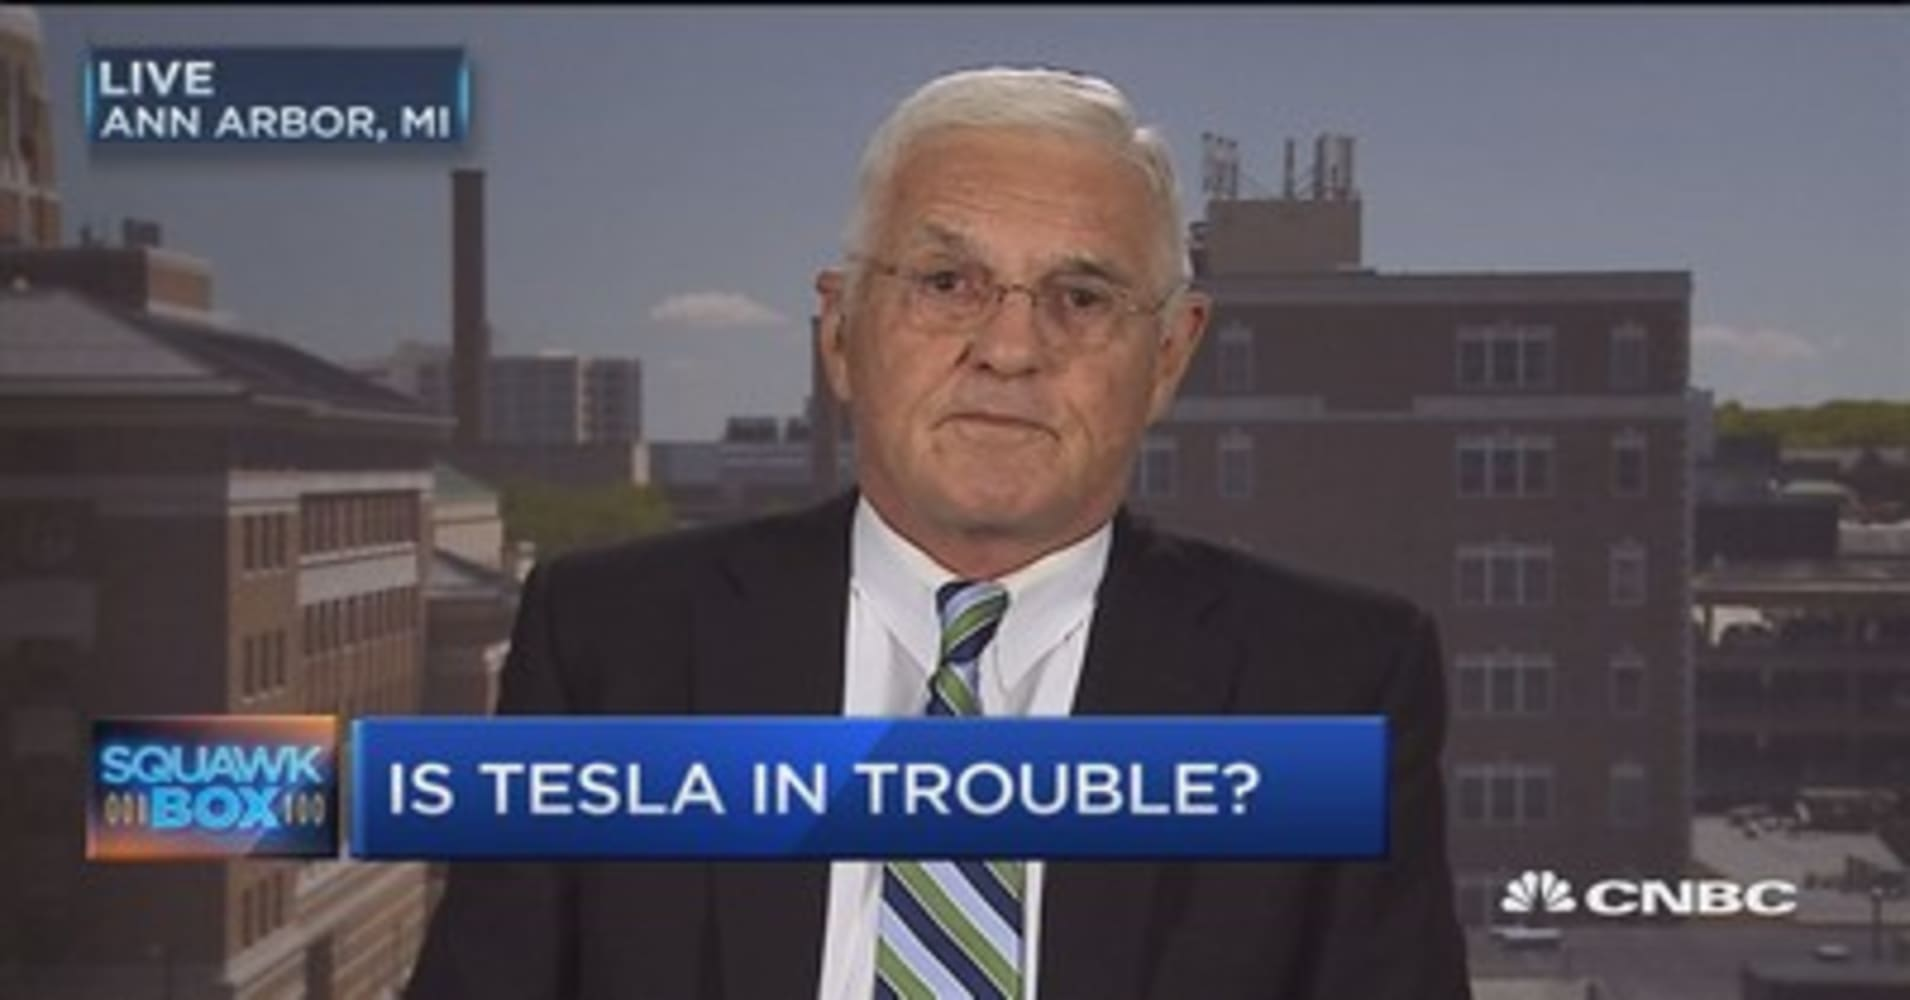 Bob lutz on tesla